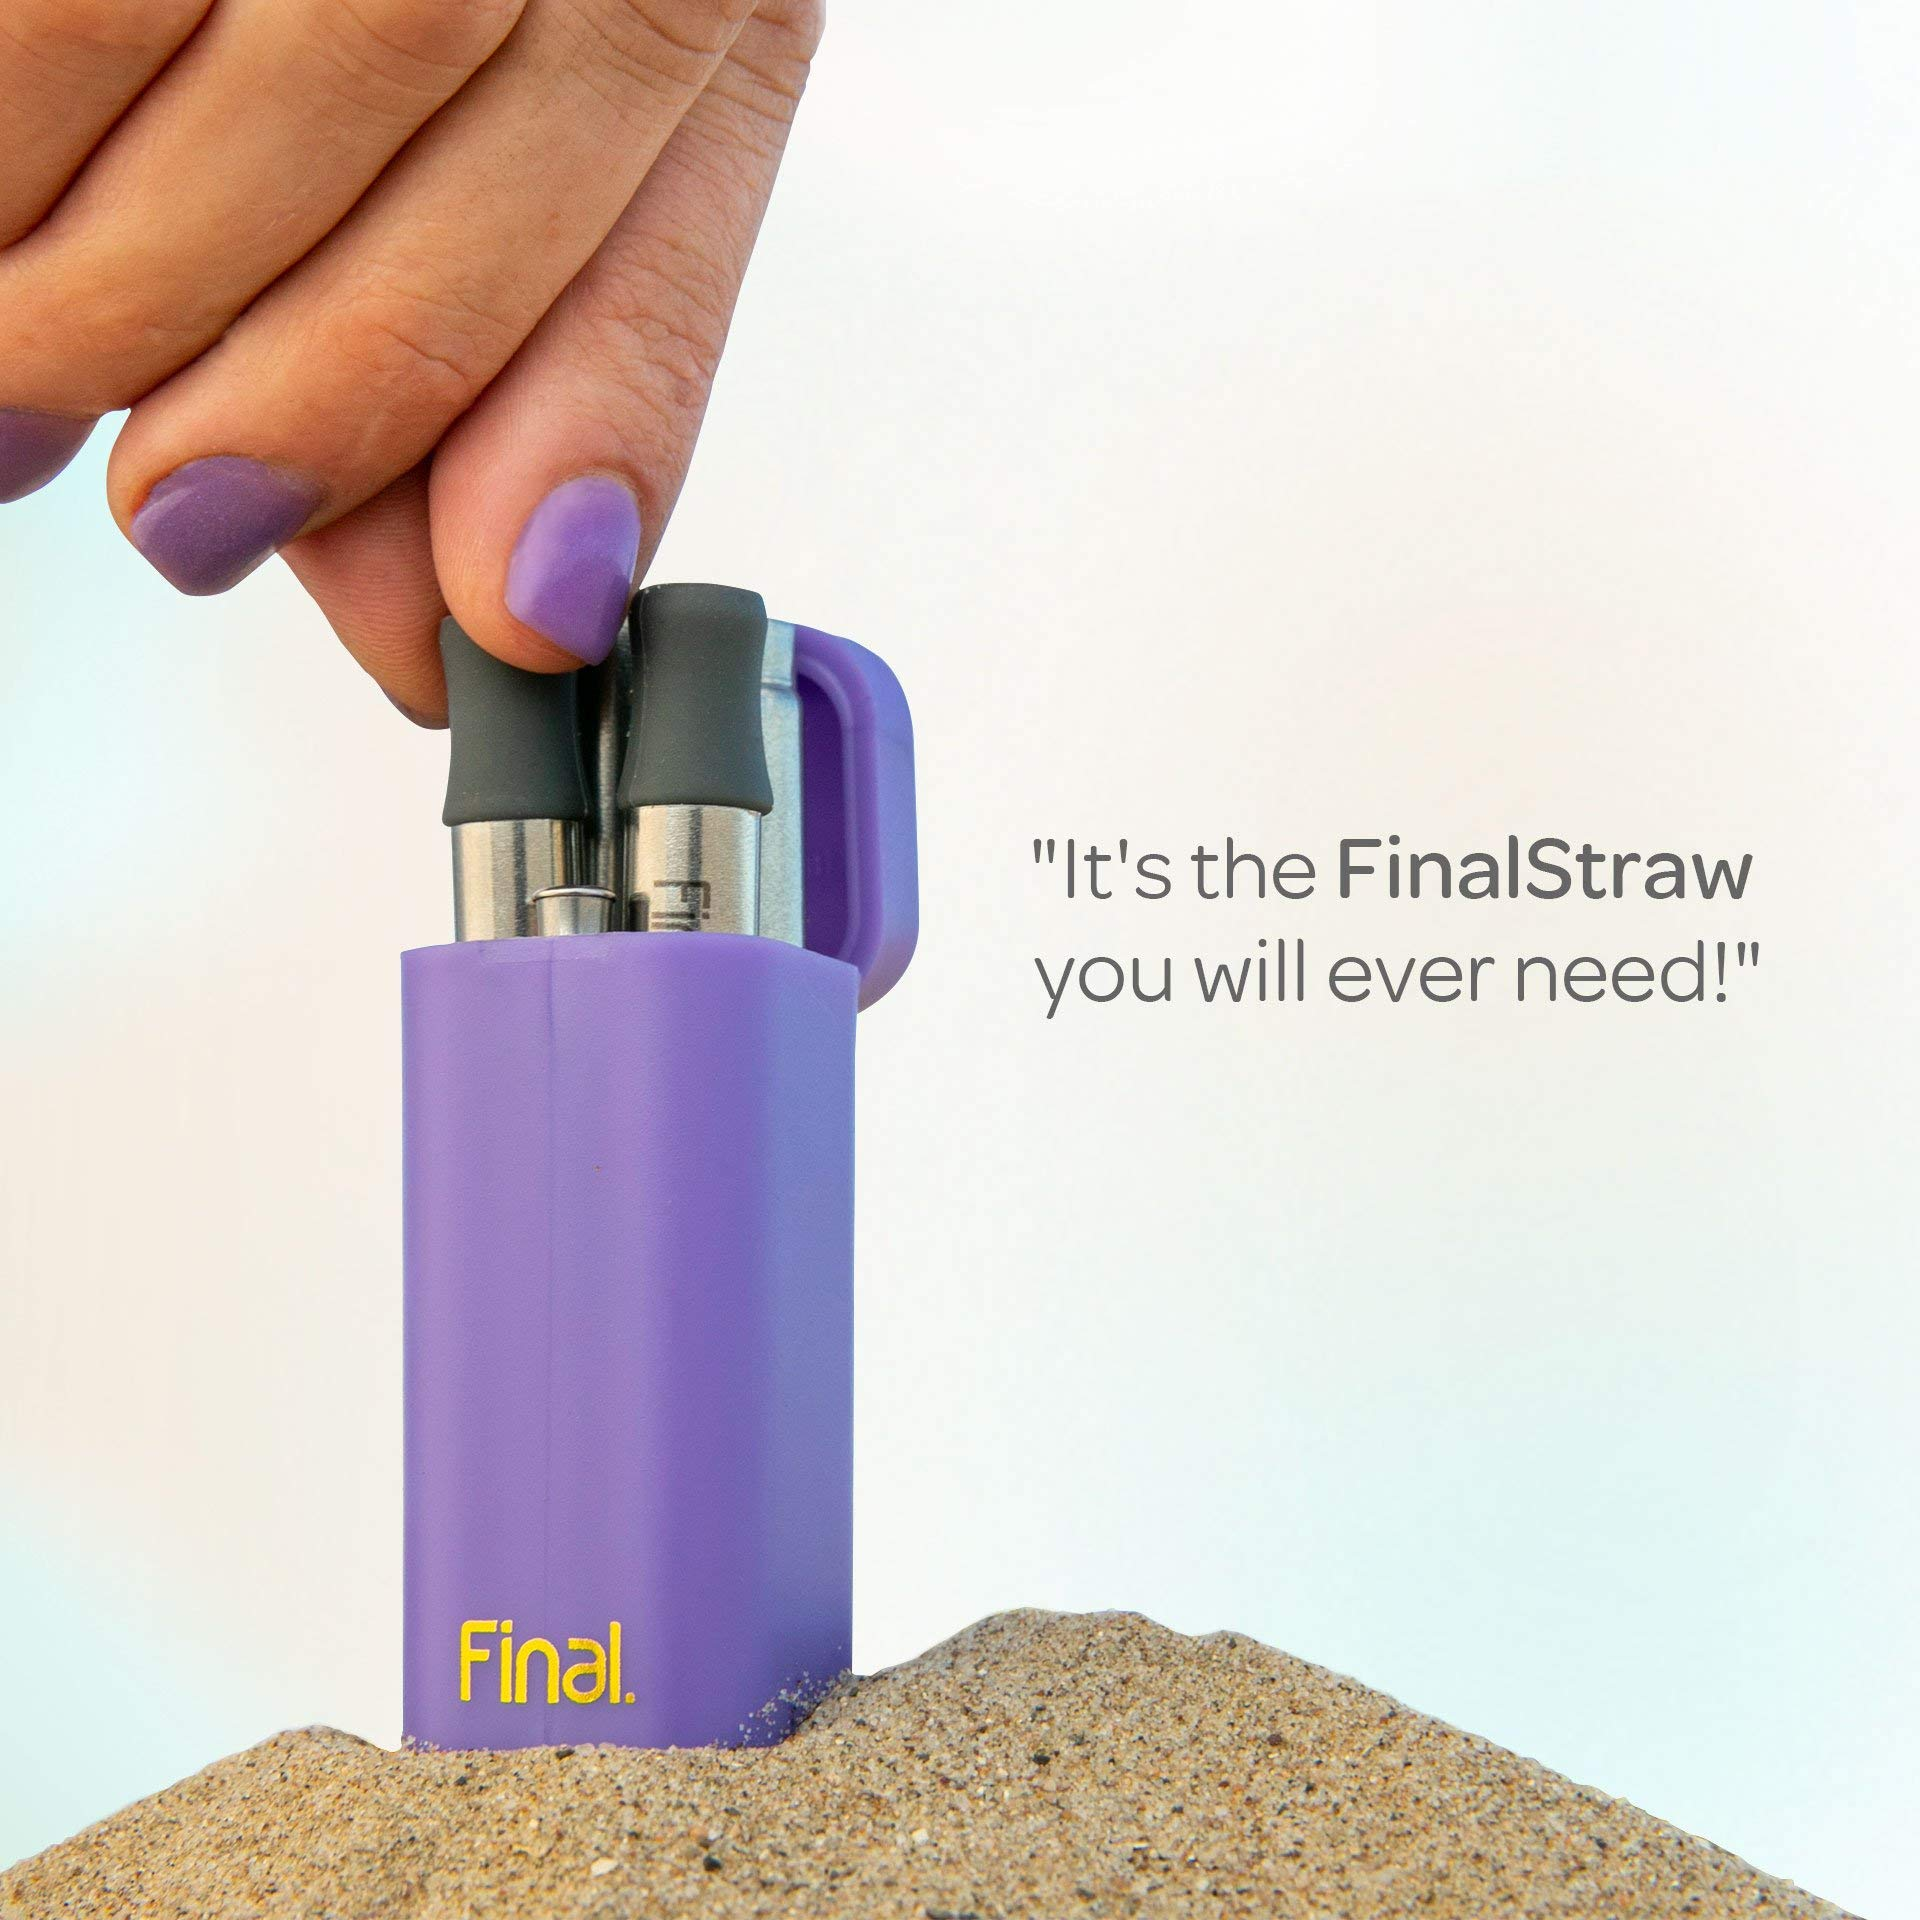 FinalStraw 2.0 - ORIGINAL - PATENTED - Real Simple, Shark Tank, Kickstarter, collapsible, stainless steel and reusable drinking straw with case (Porpoise-Ful Purple) by Final Straw